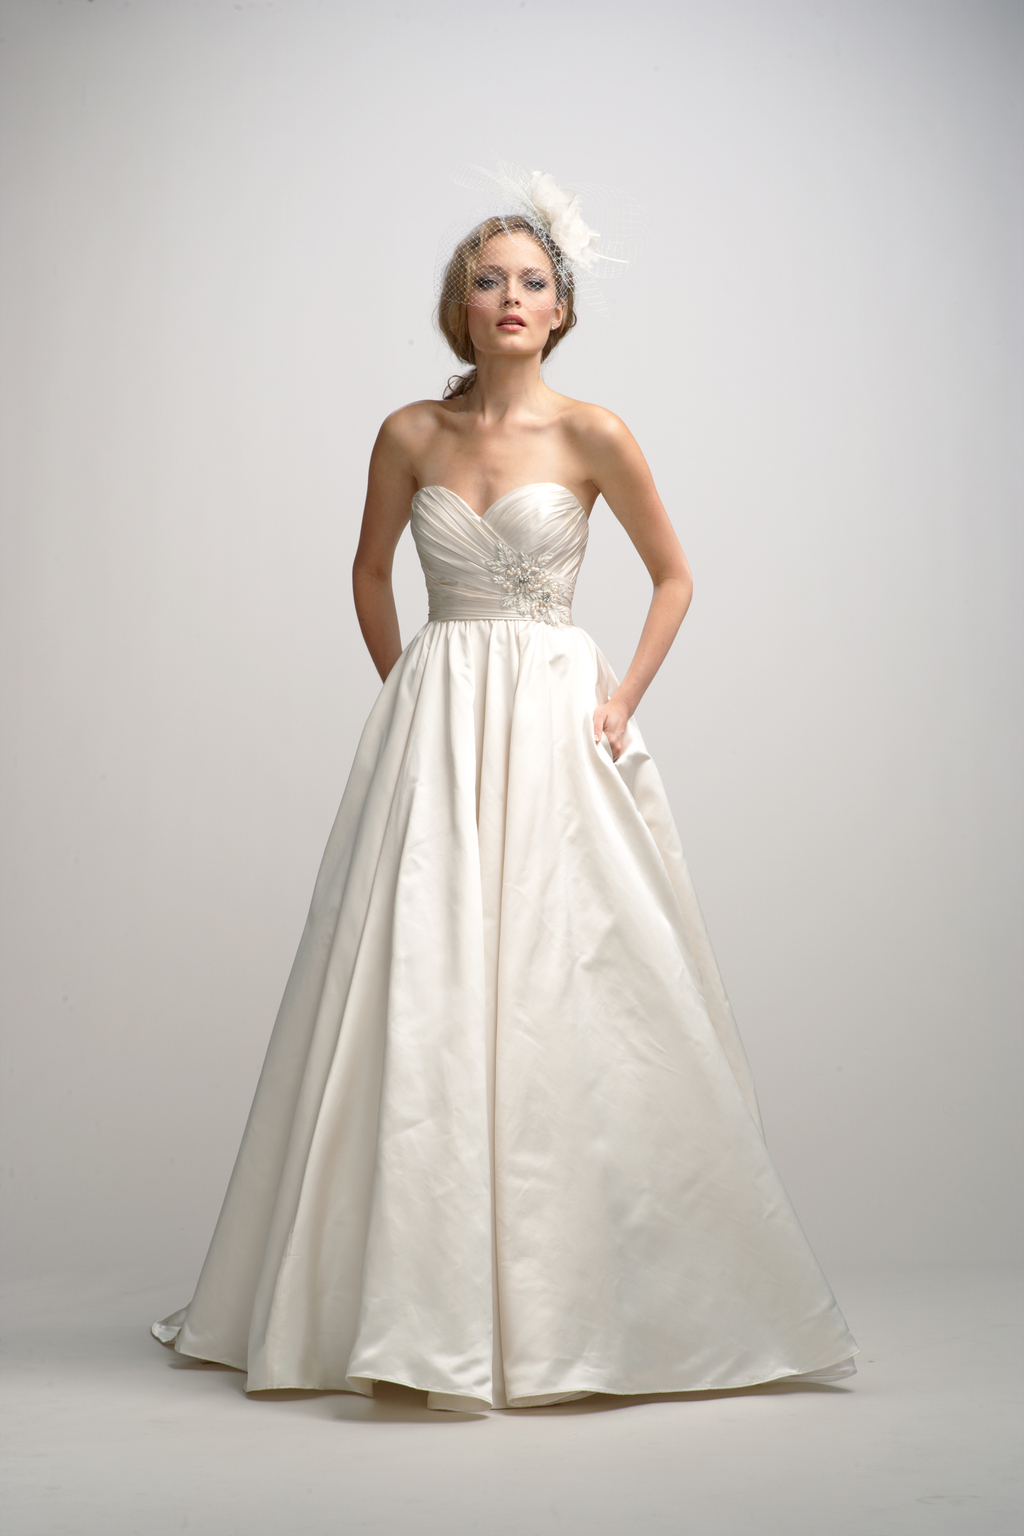 Fall-2012-wedding-dress-watters-bridal-gown-2.original.full